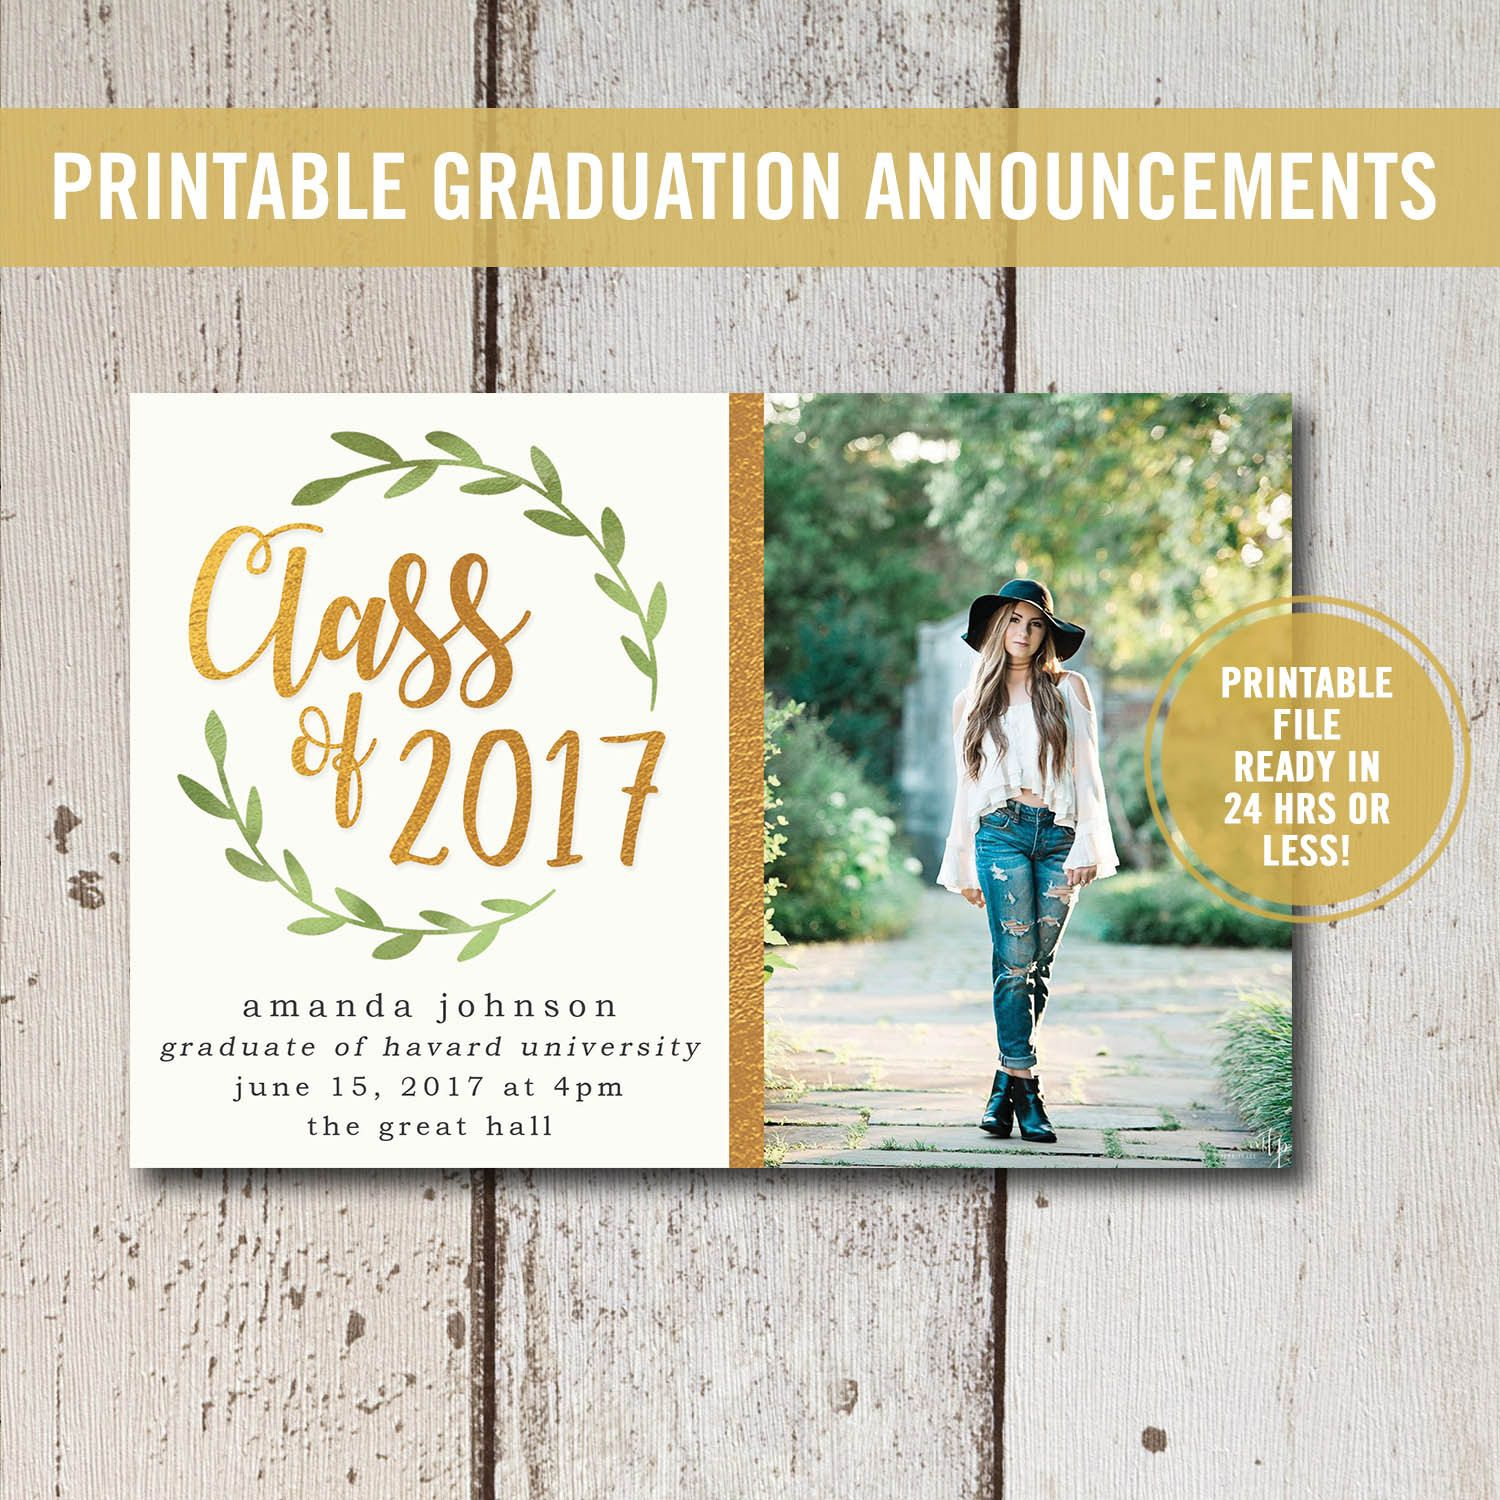 College graduation invitation printable high school graduation college graduation invitation printable or printed high school graduation announcement printed class of 2018 senior announcement 2018 filmwisefo Image collections